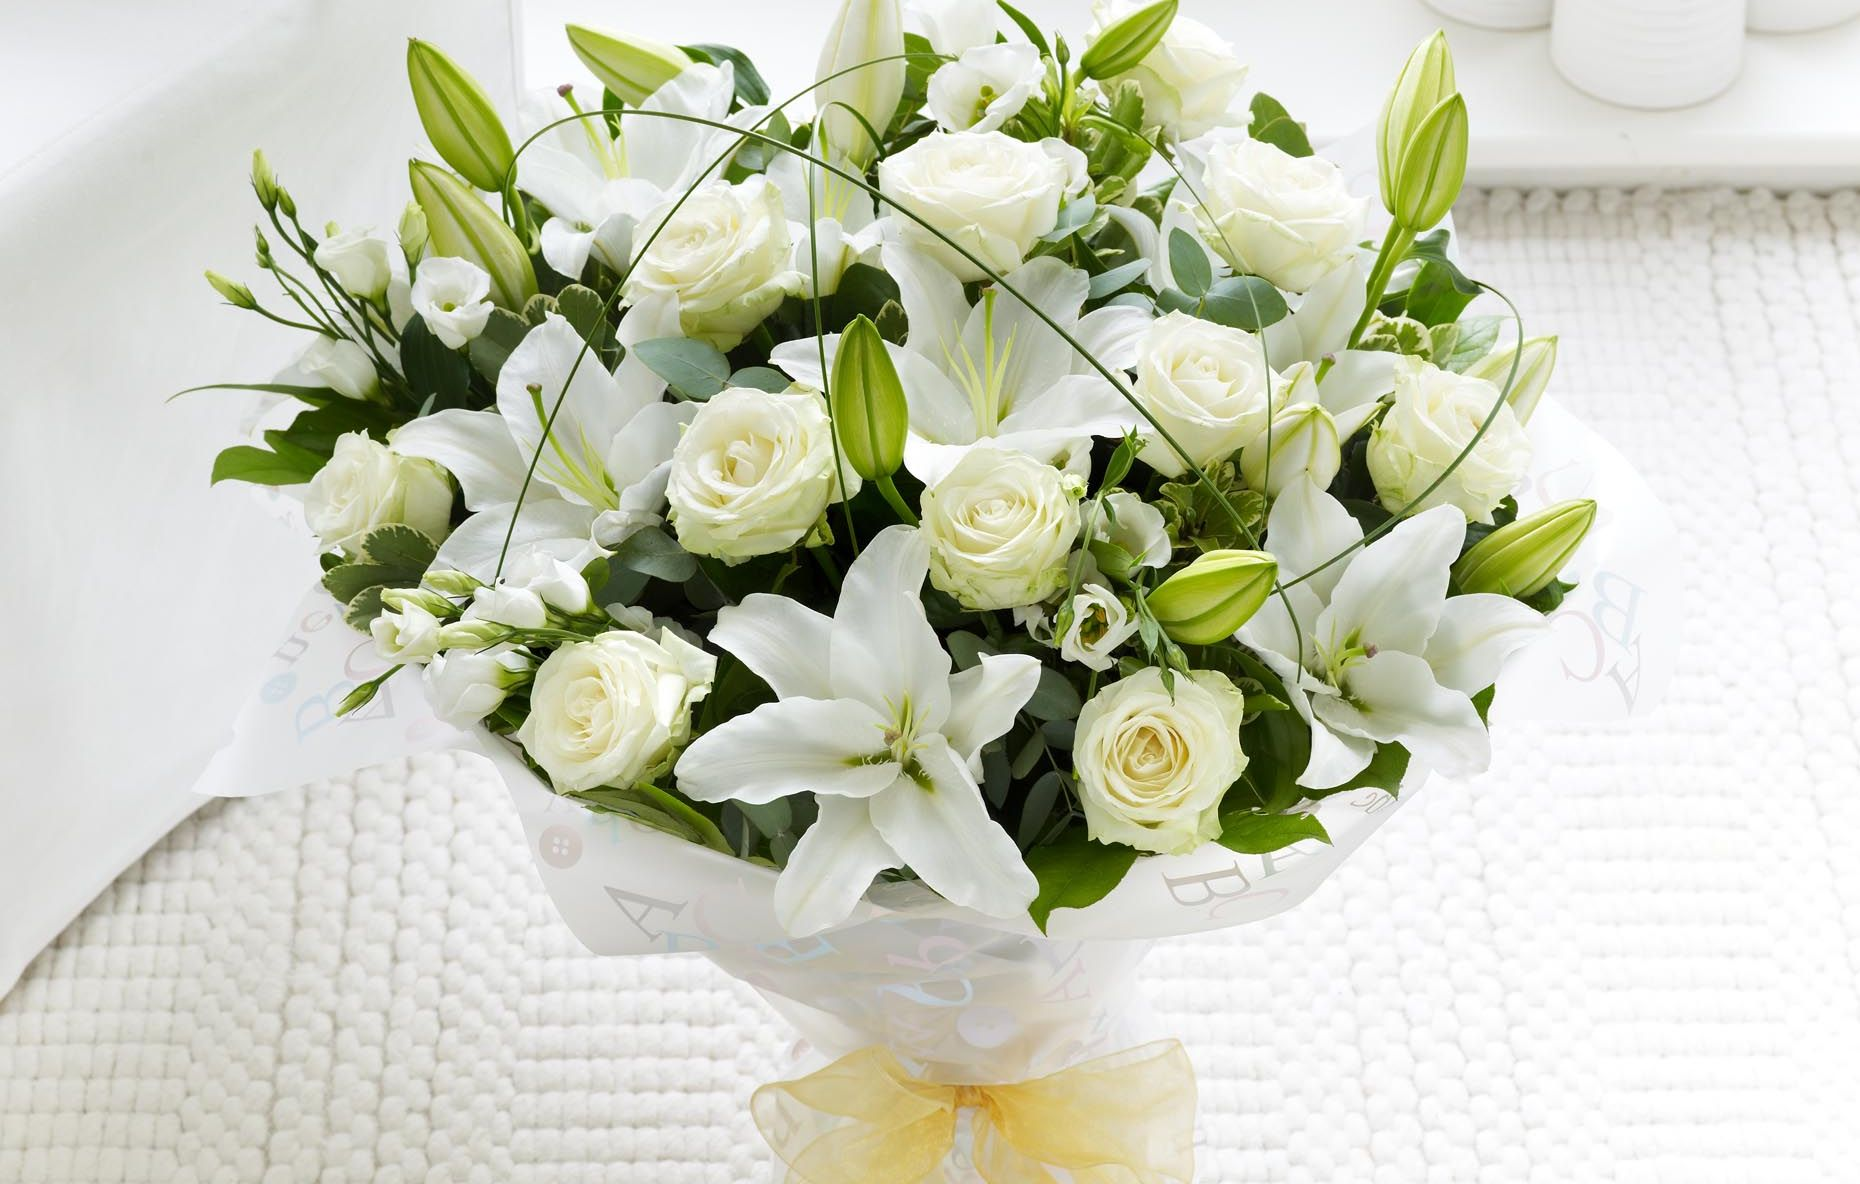 Admire Florist Award Winning Florist Bexley North Sydney Wide Deliver